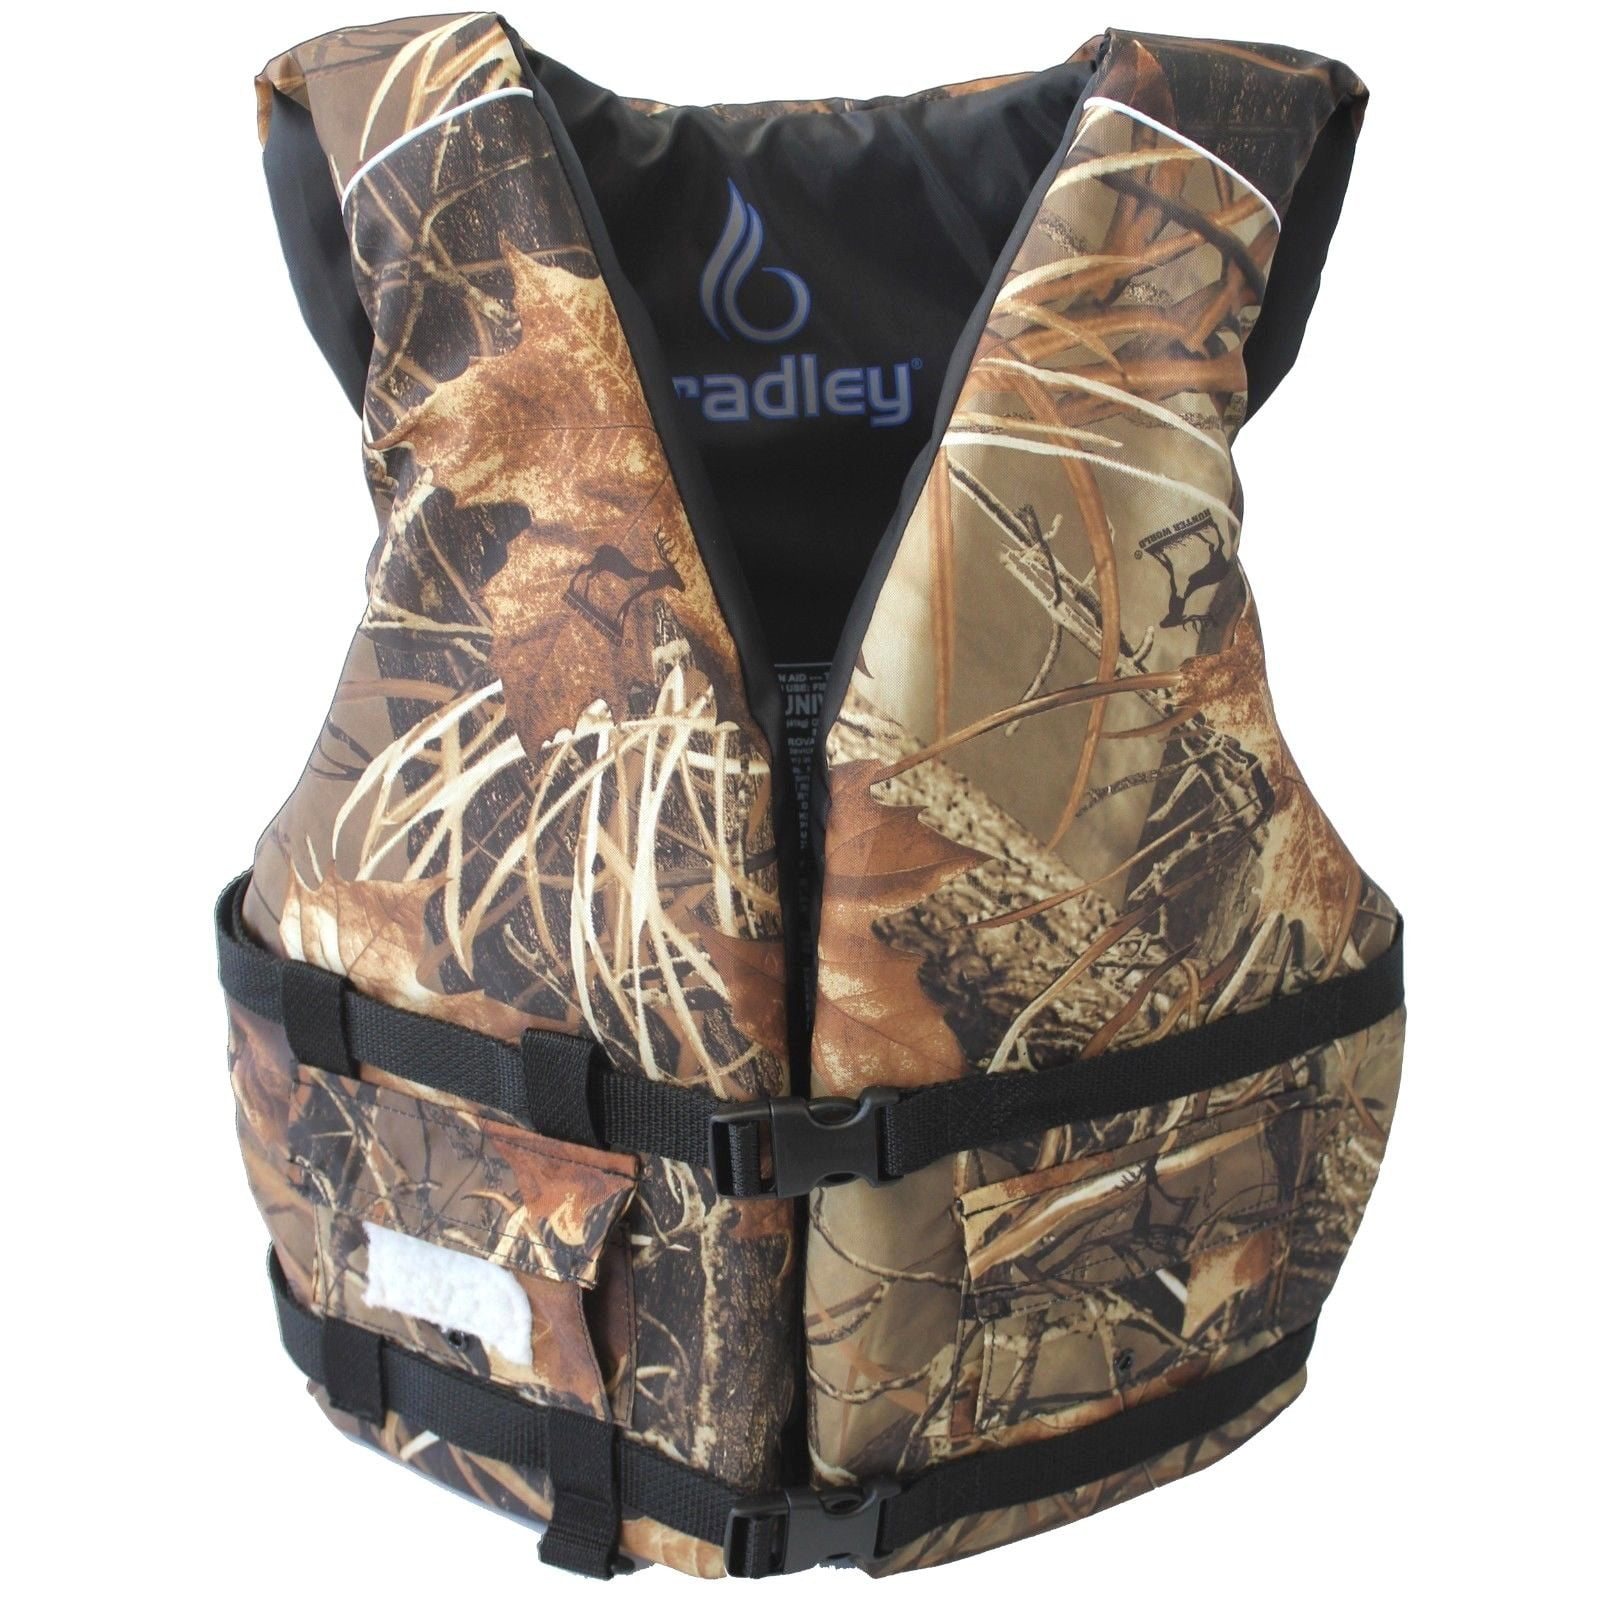 Click here to buy Bradley Adult Basic Fishing Life Vest US Coast Guard Approved by Bradley.